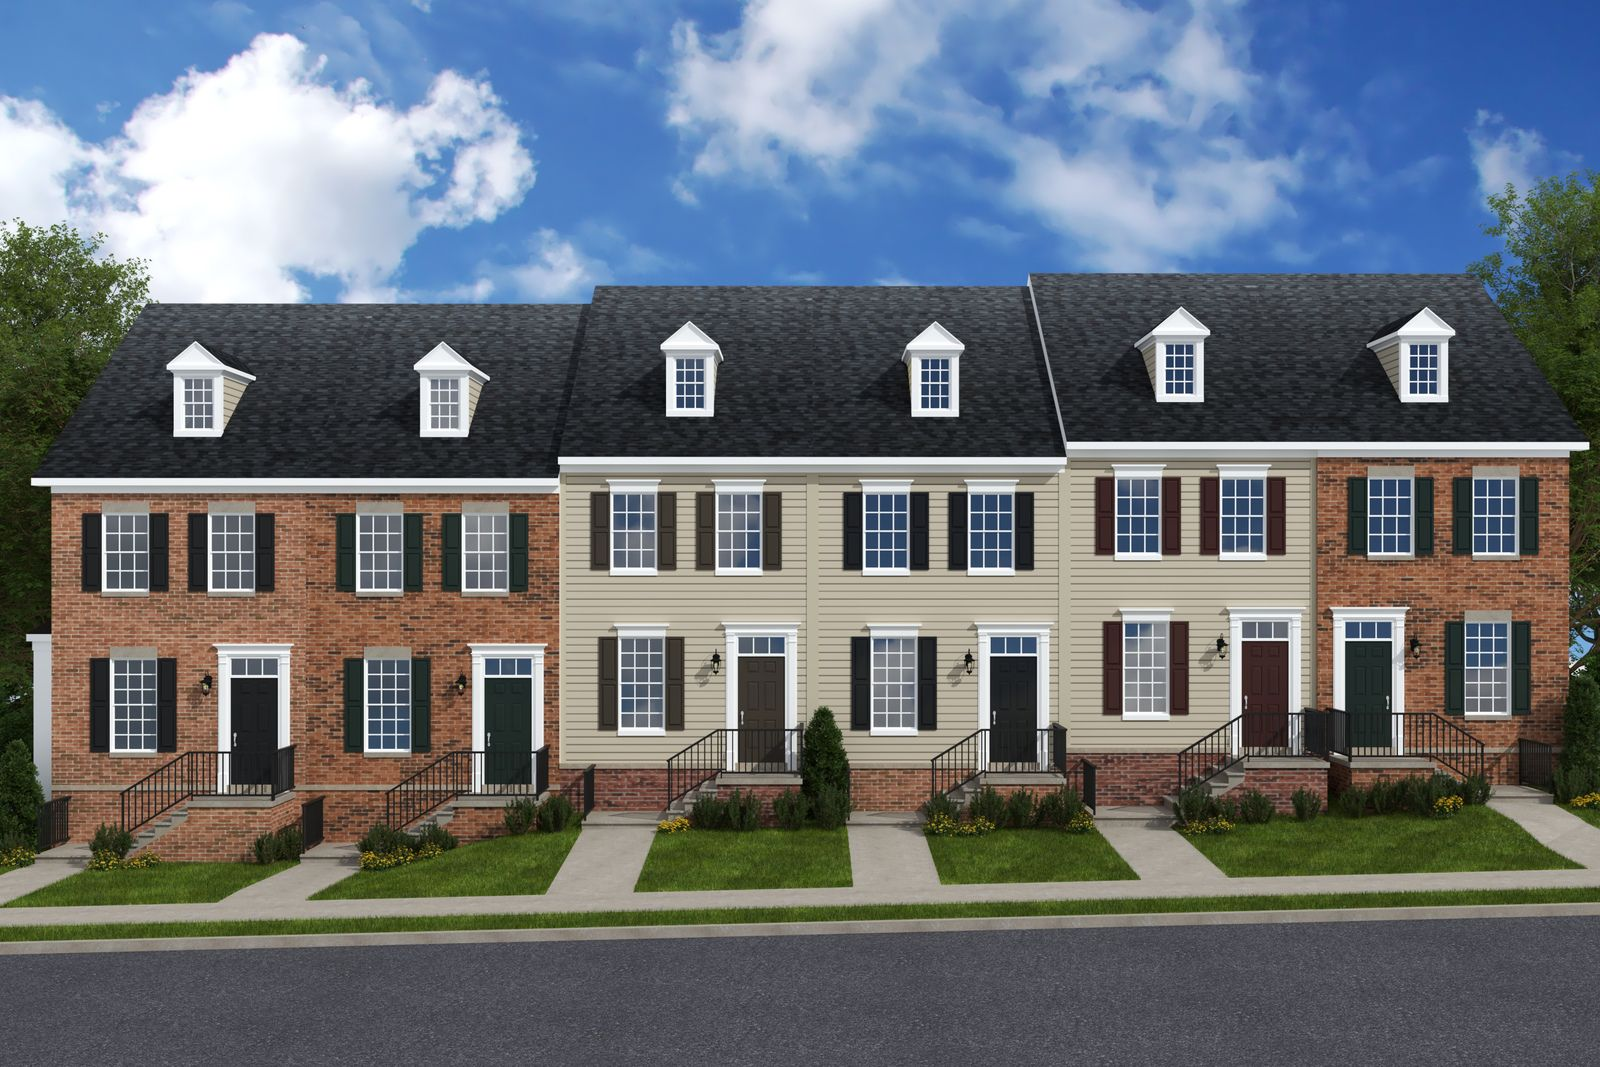 WELCOME TO STANTON SQUARE IN DC:Own a new garage townhome at an affordable price in DC. Only 1 mile to the metro & 4 miles to the National Mall. Be one of the first to know when they are released - Join the VIP List.